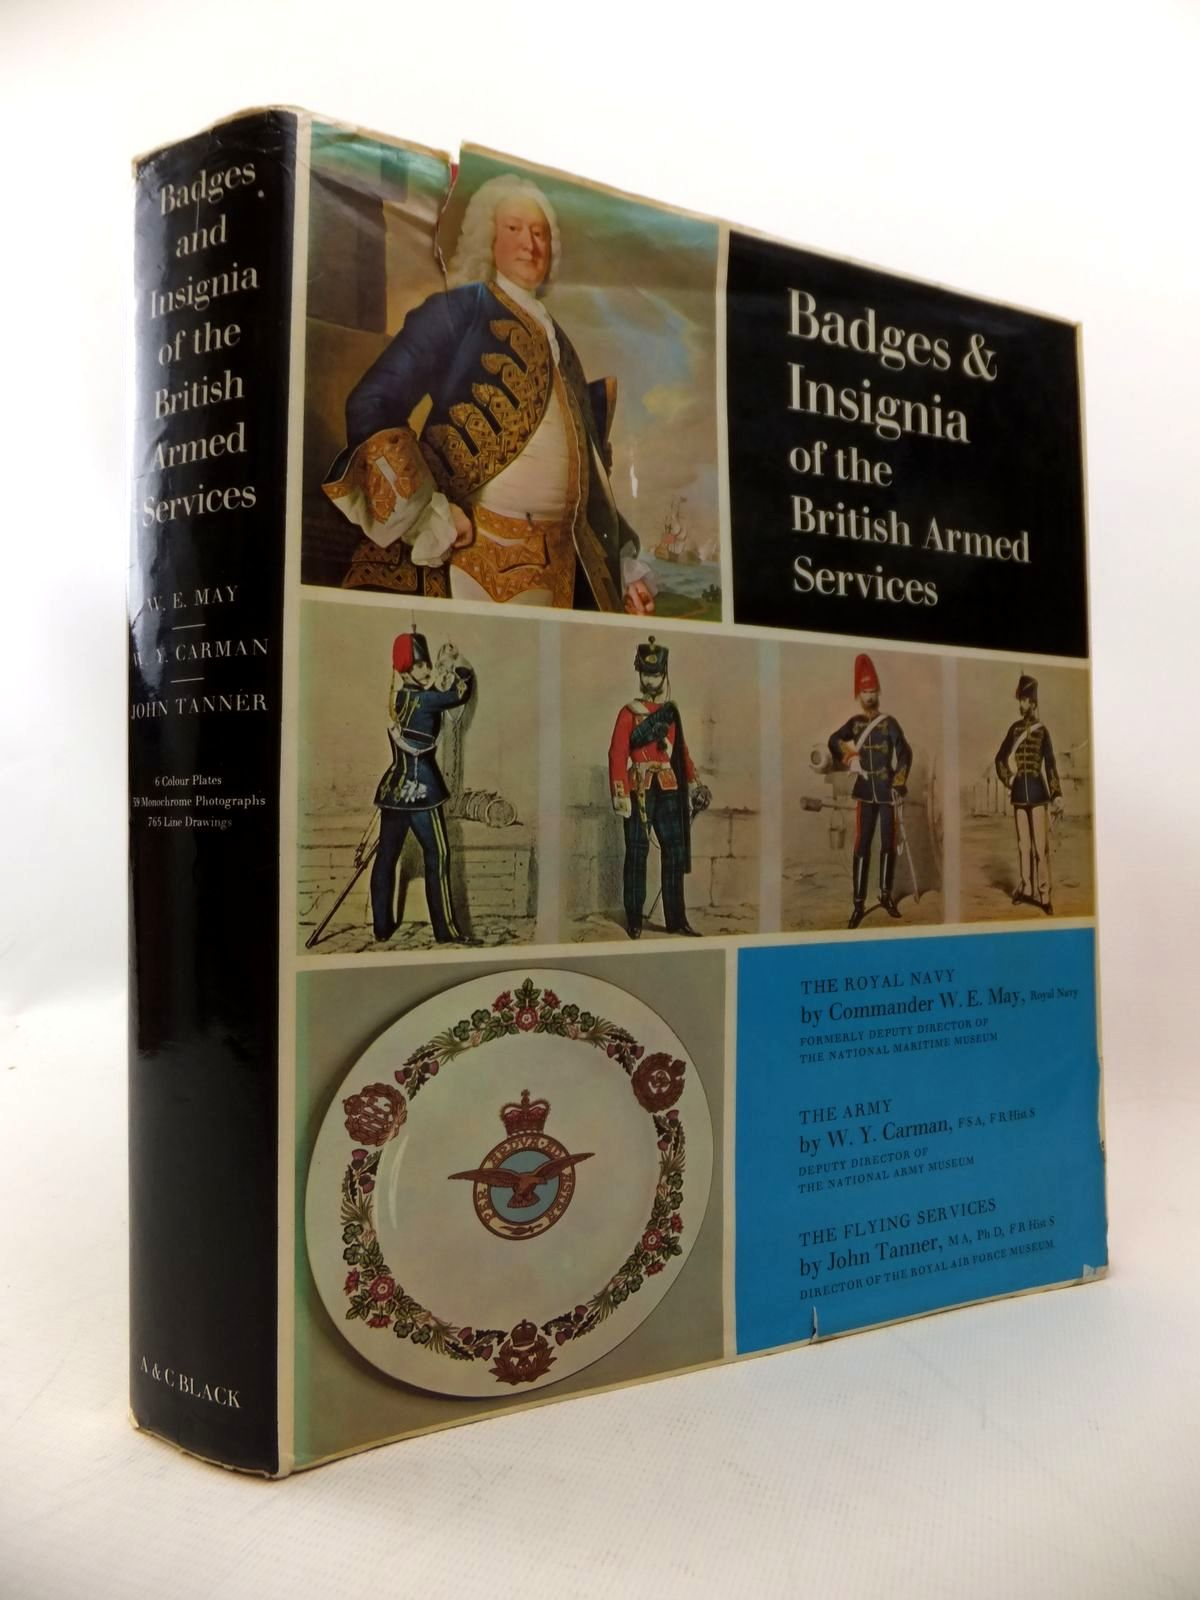 Photo of BADGES AND INSIGNIA OF THE BRITISH ARMED SERVICES written by May, W.E. Carman, William Y. Tanner, John published by Adam & Charles Black (STOCK CODE: 1814029)  for sale by Stella & Rose's Books